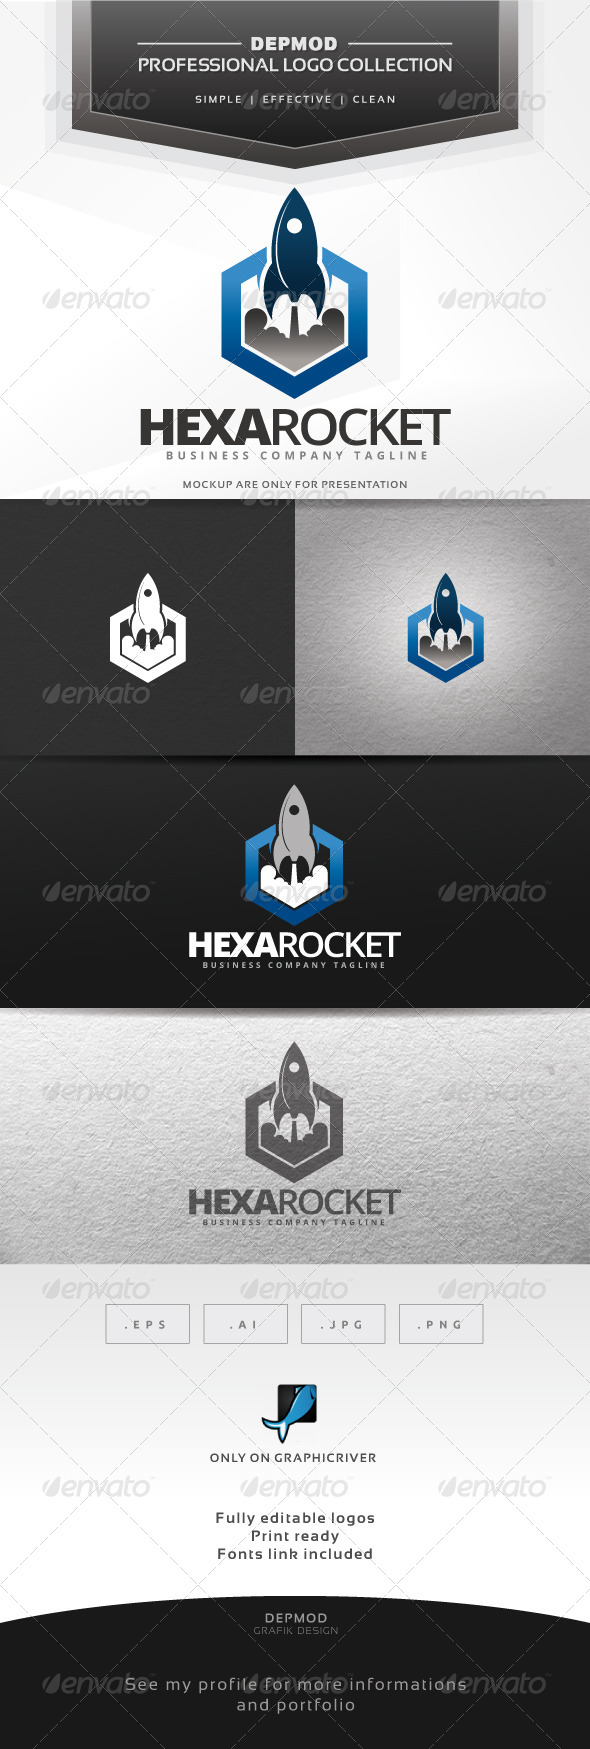 GraphicRiver Hexa Rocket Logo 7010462